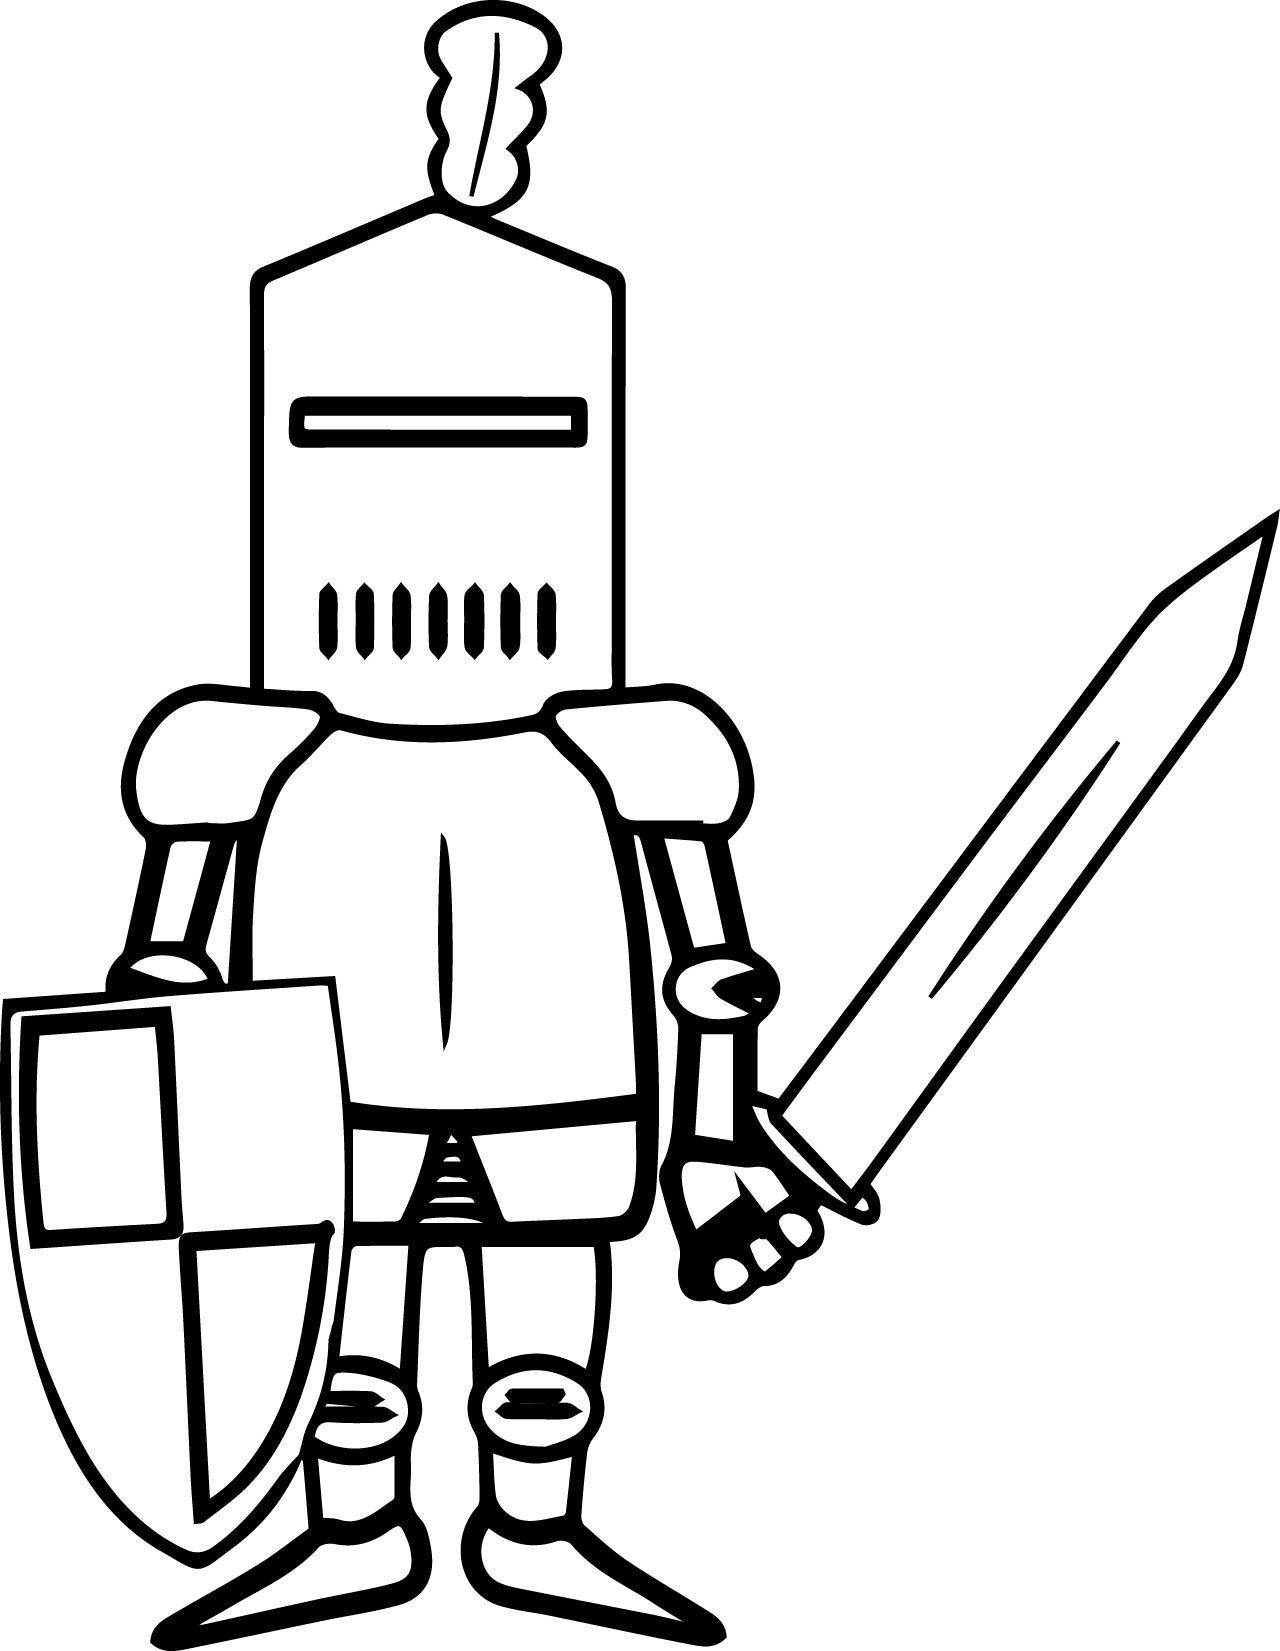 Knight sword coloring page